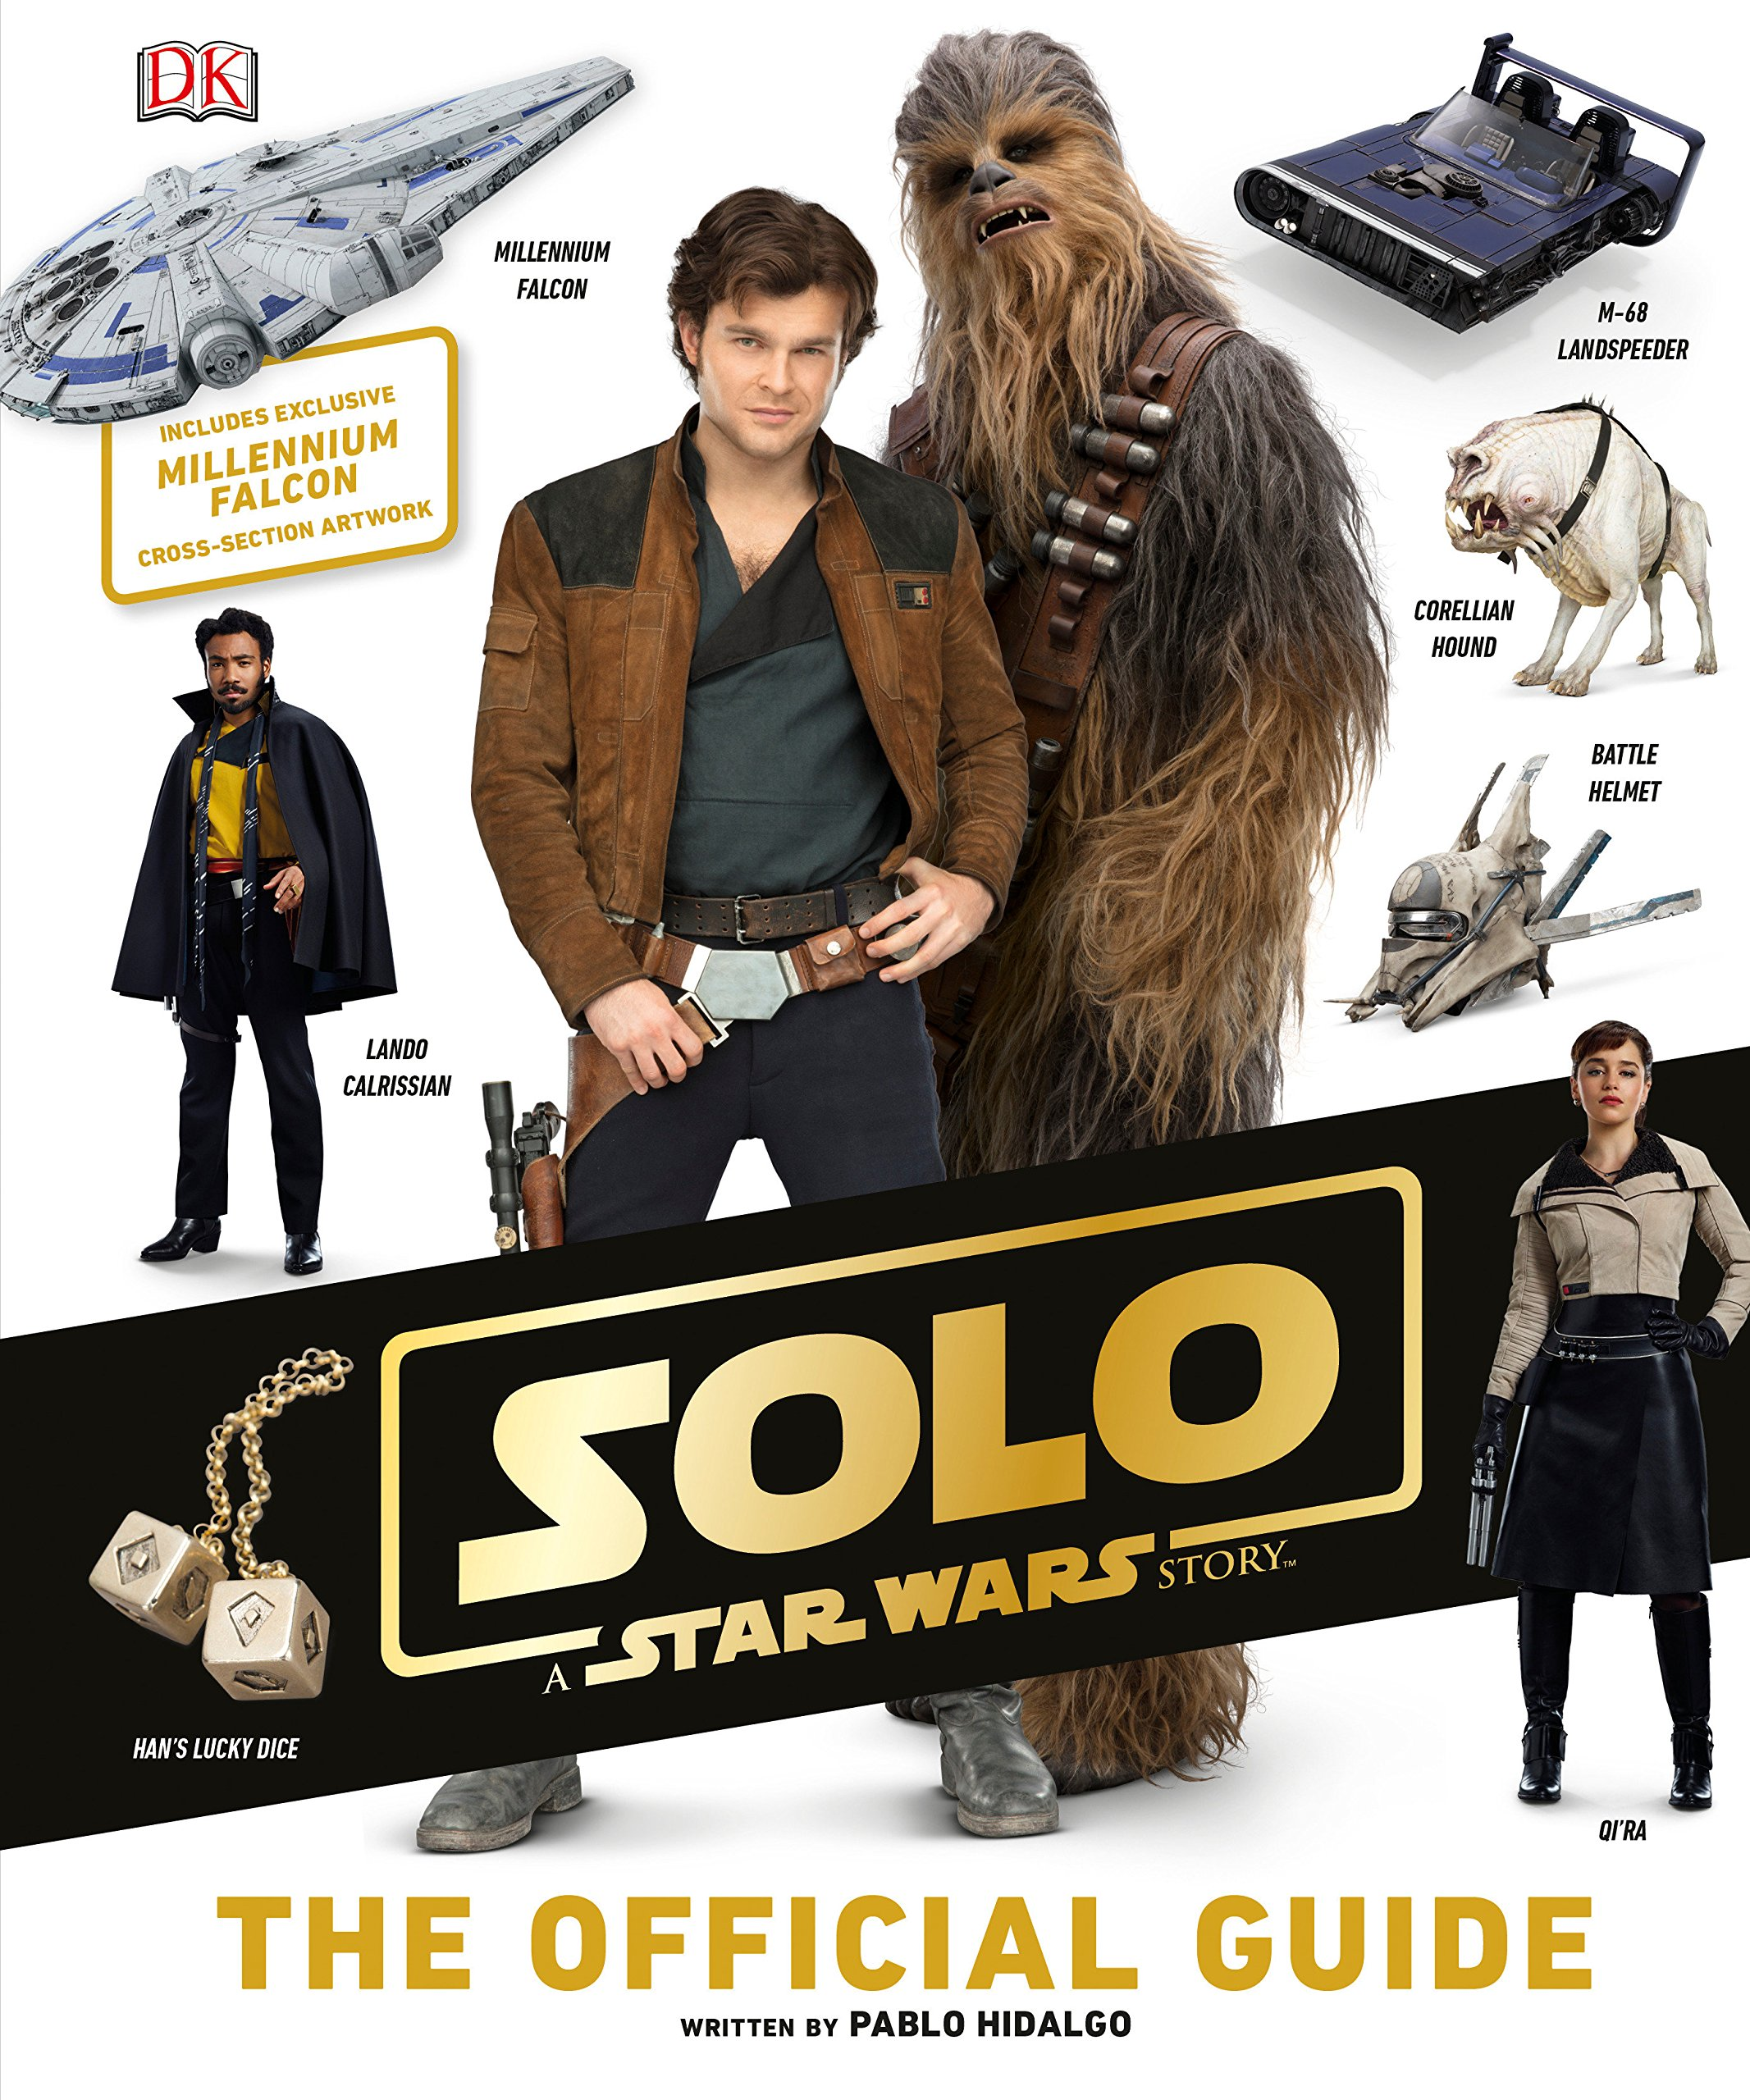 Solo: A Star Wars Story the Official Guide (Inglés) Pasta dura